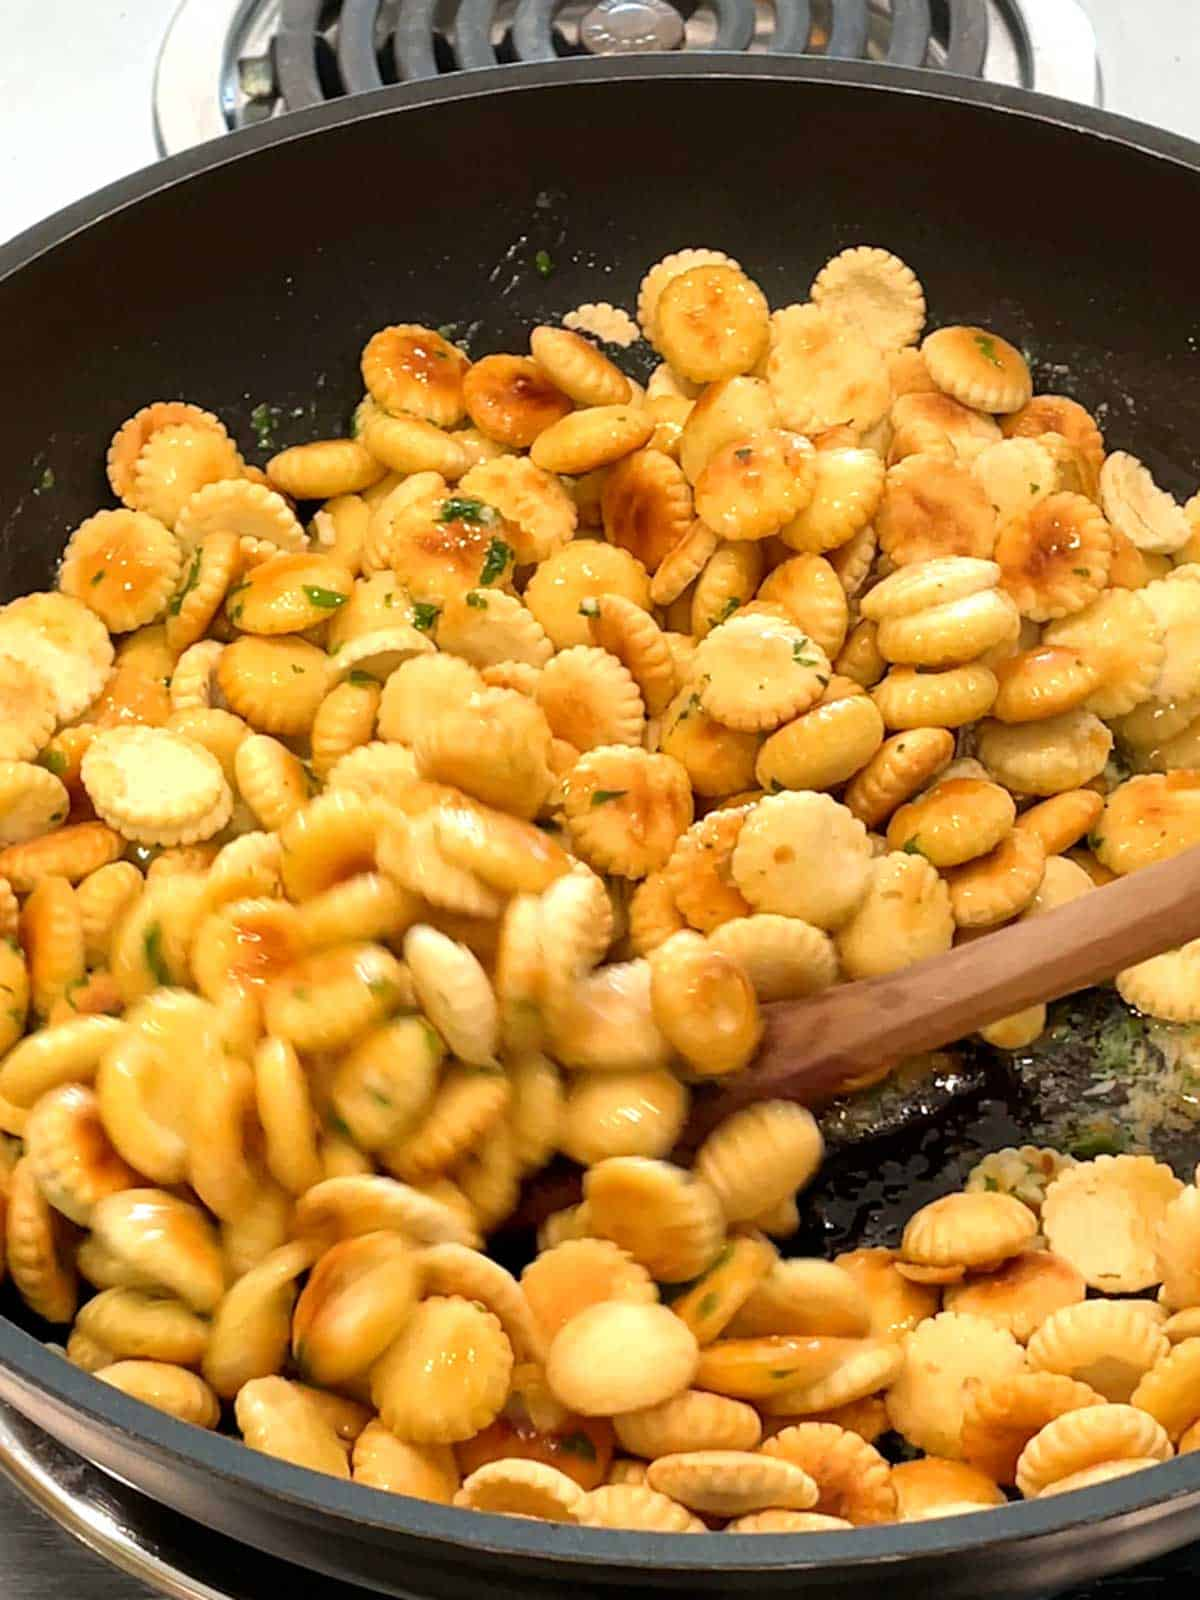 Stirring oyster crackers with butter mixture.